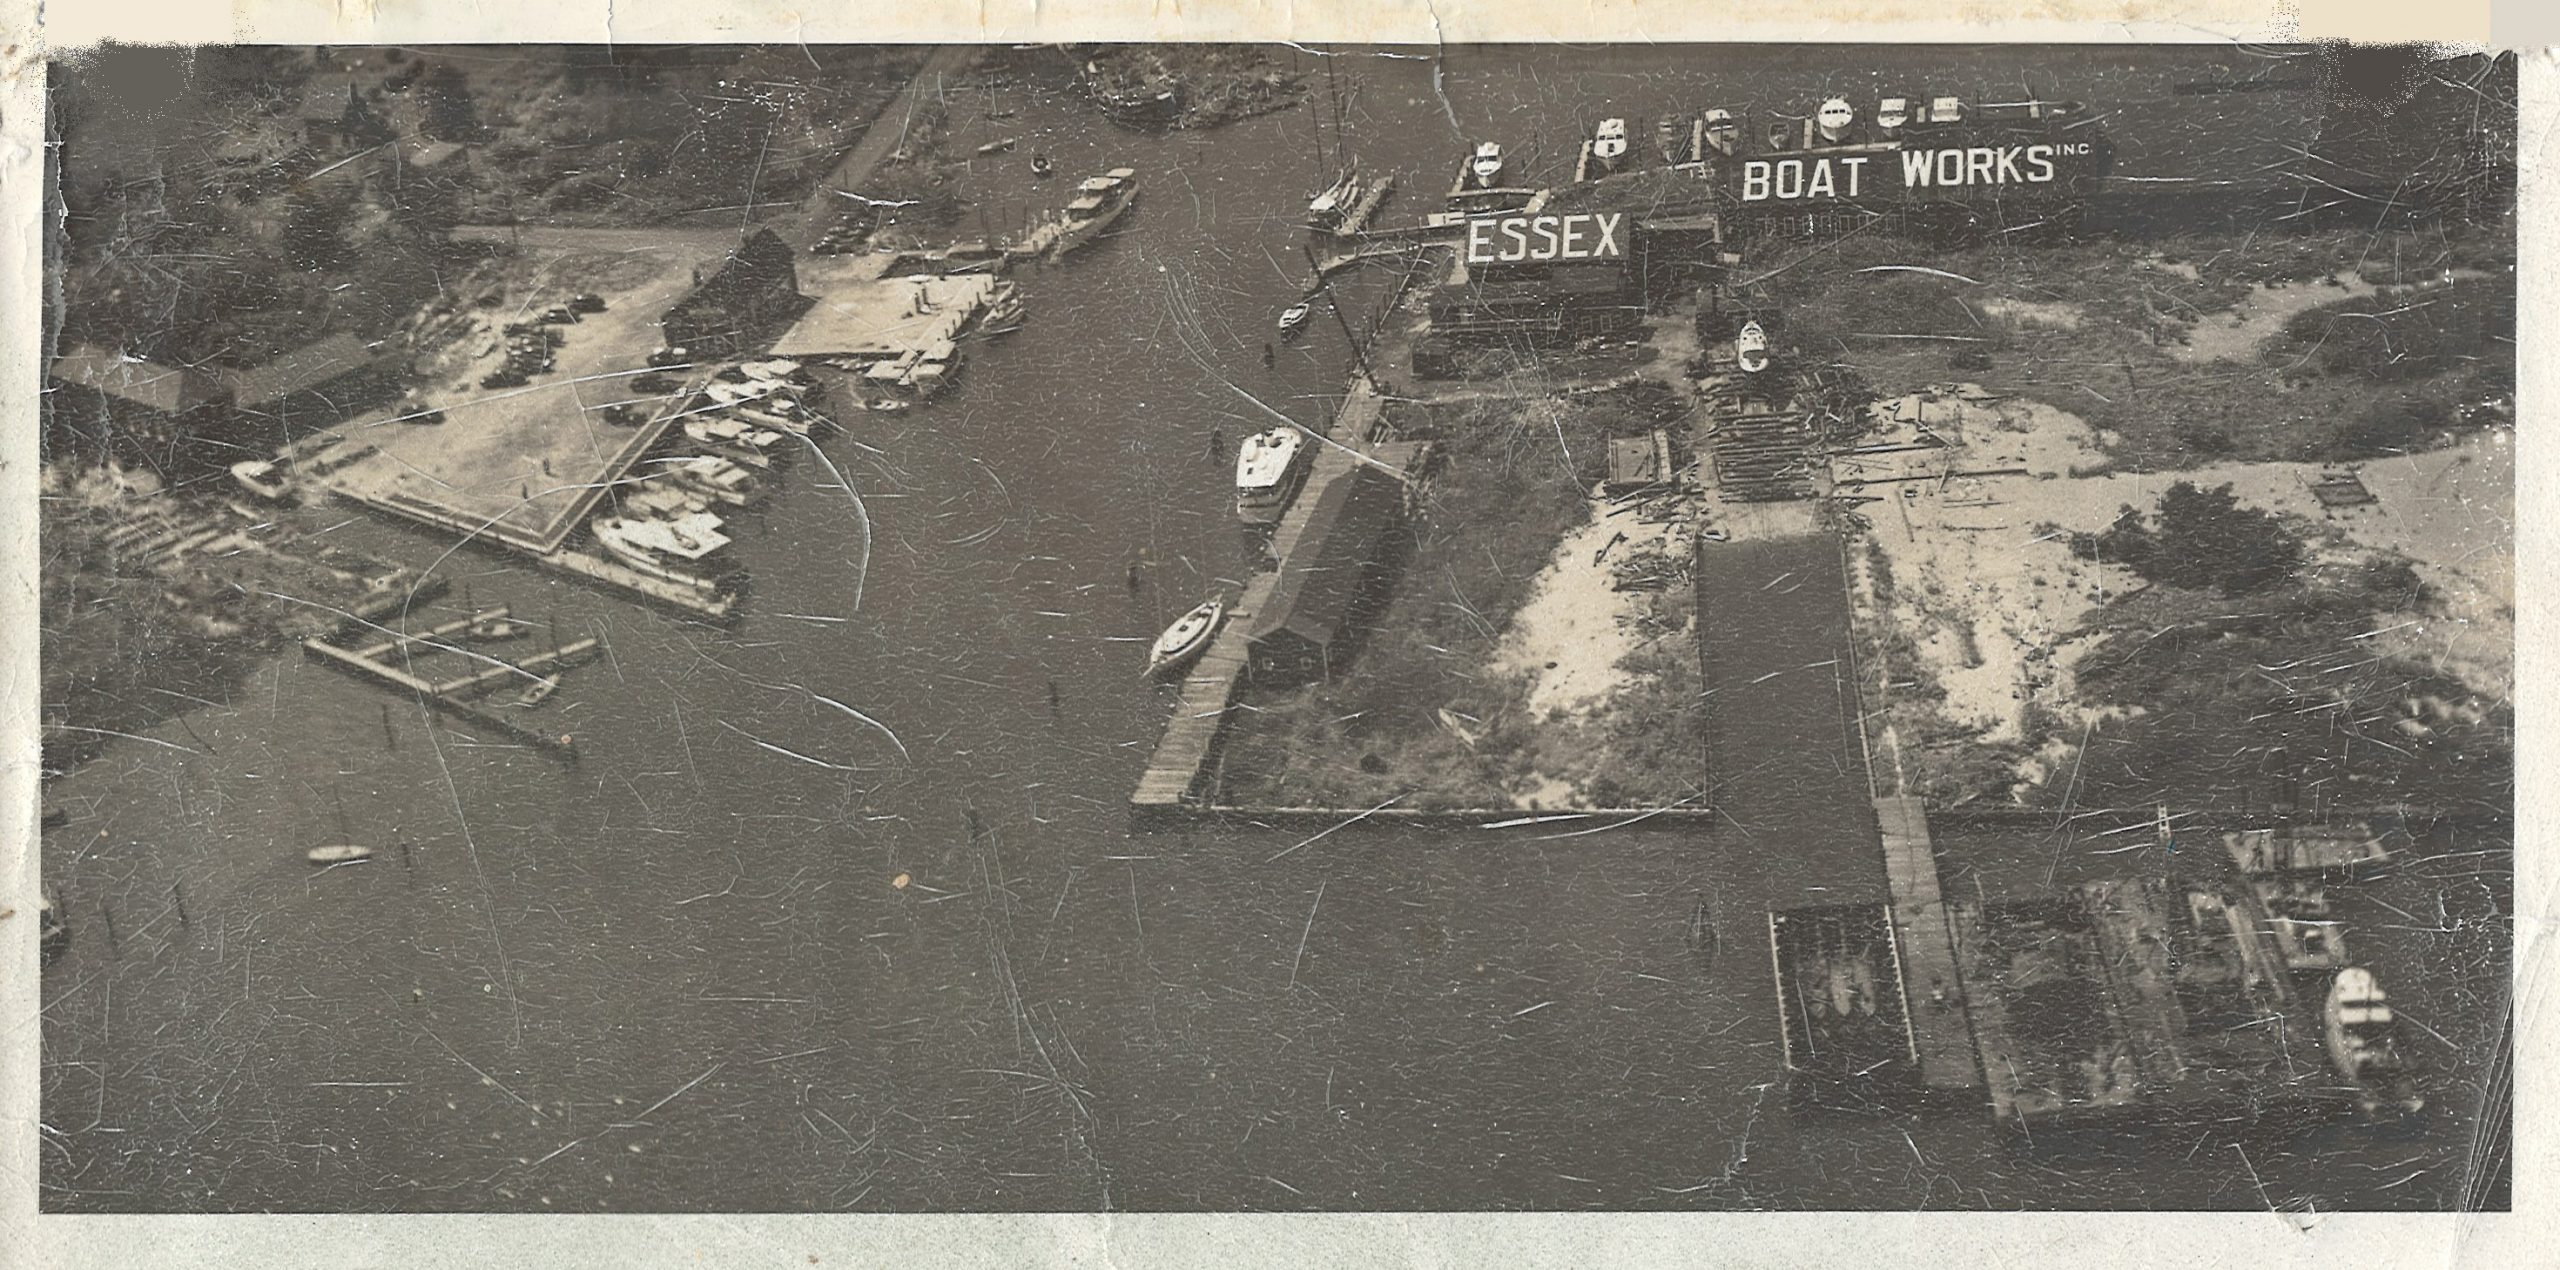 Aerial view of Essex Boat Works Circa 1940